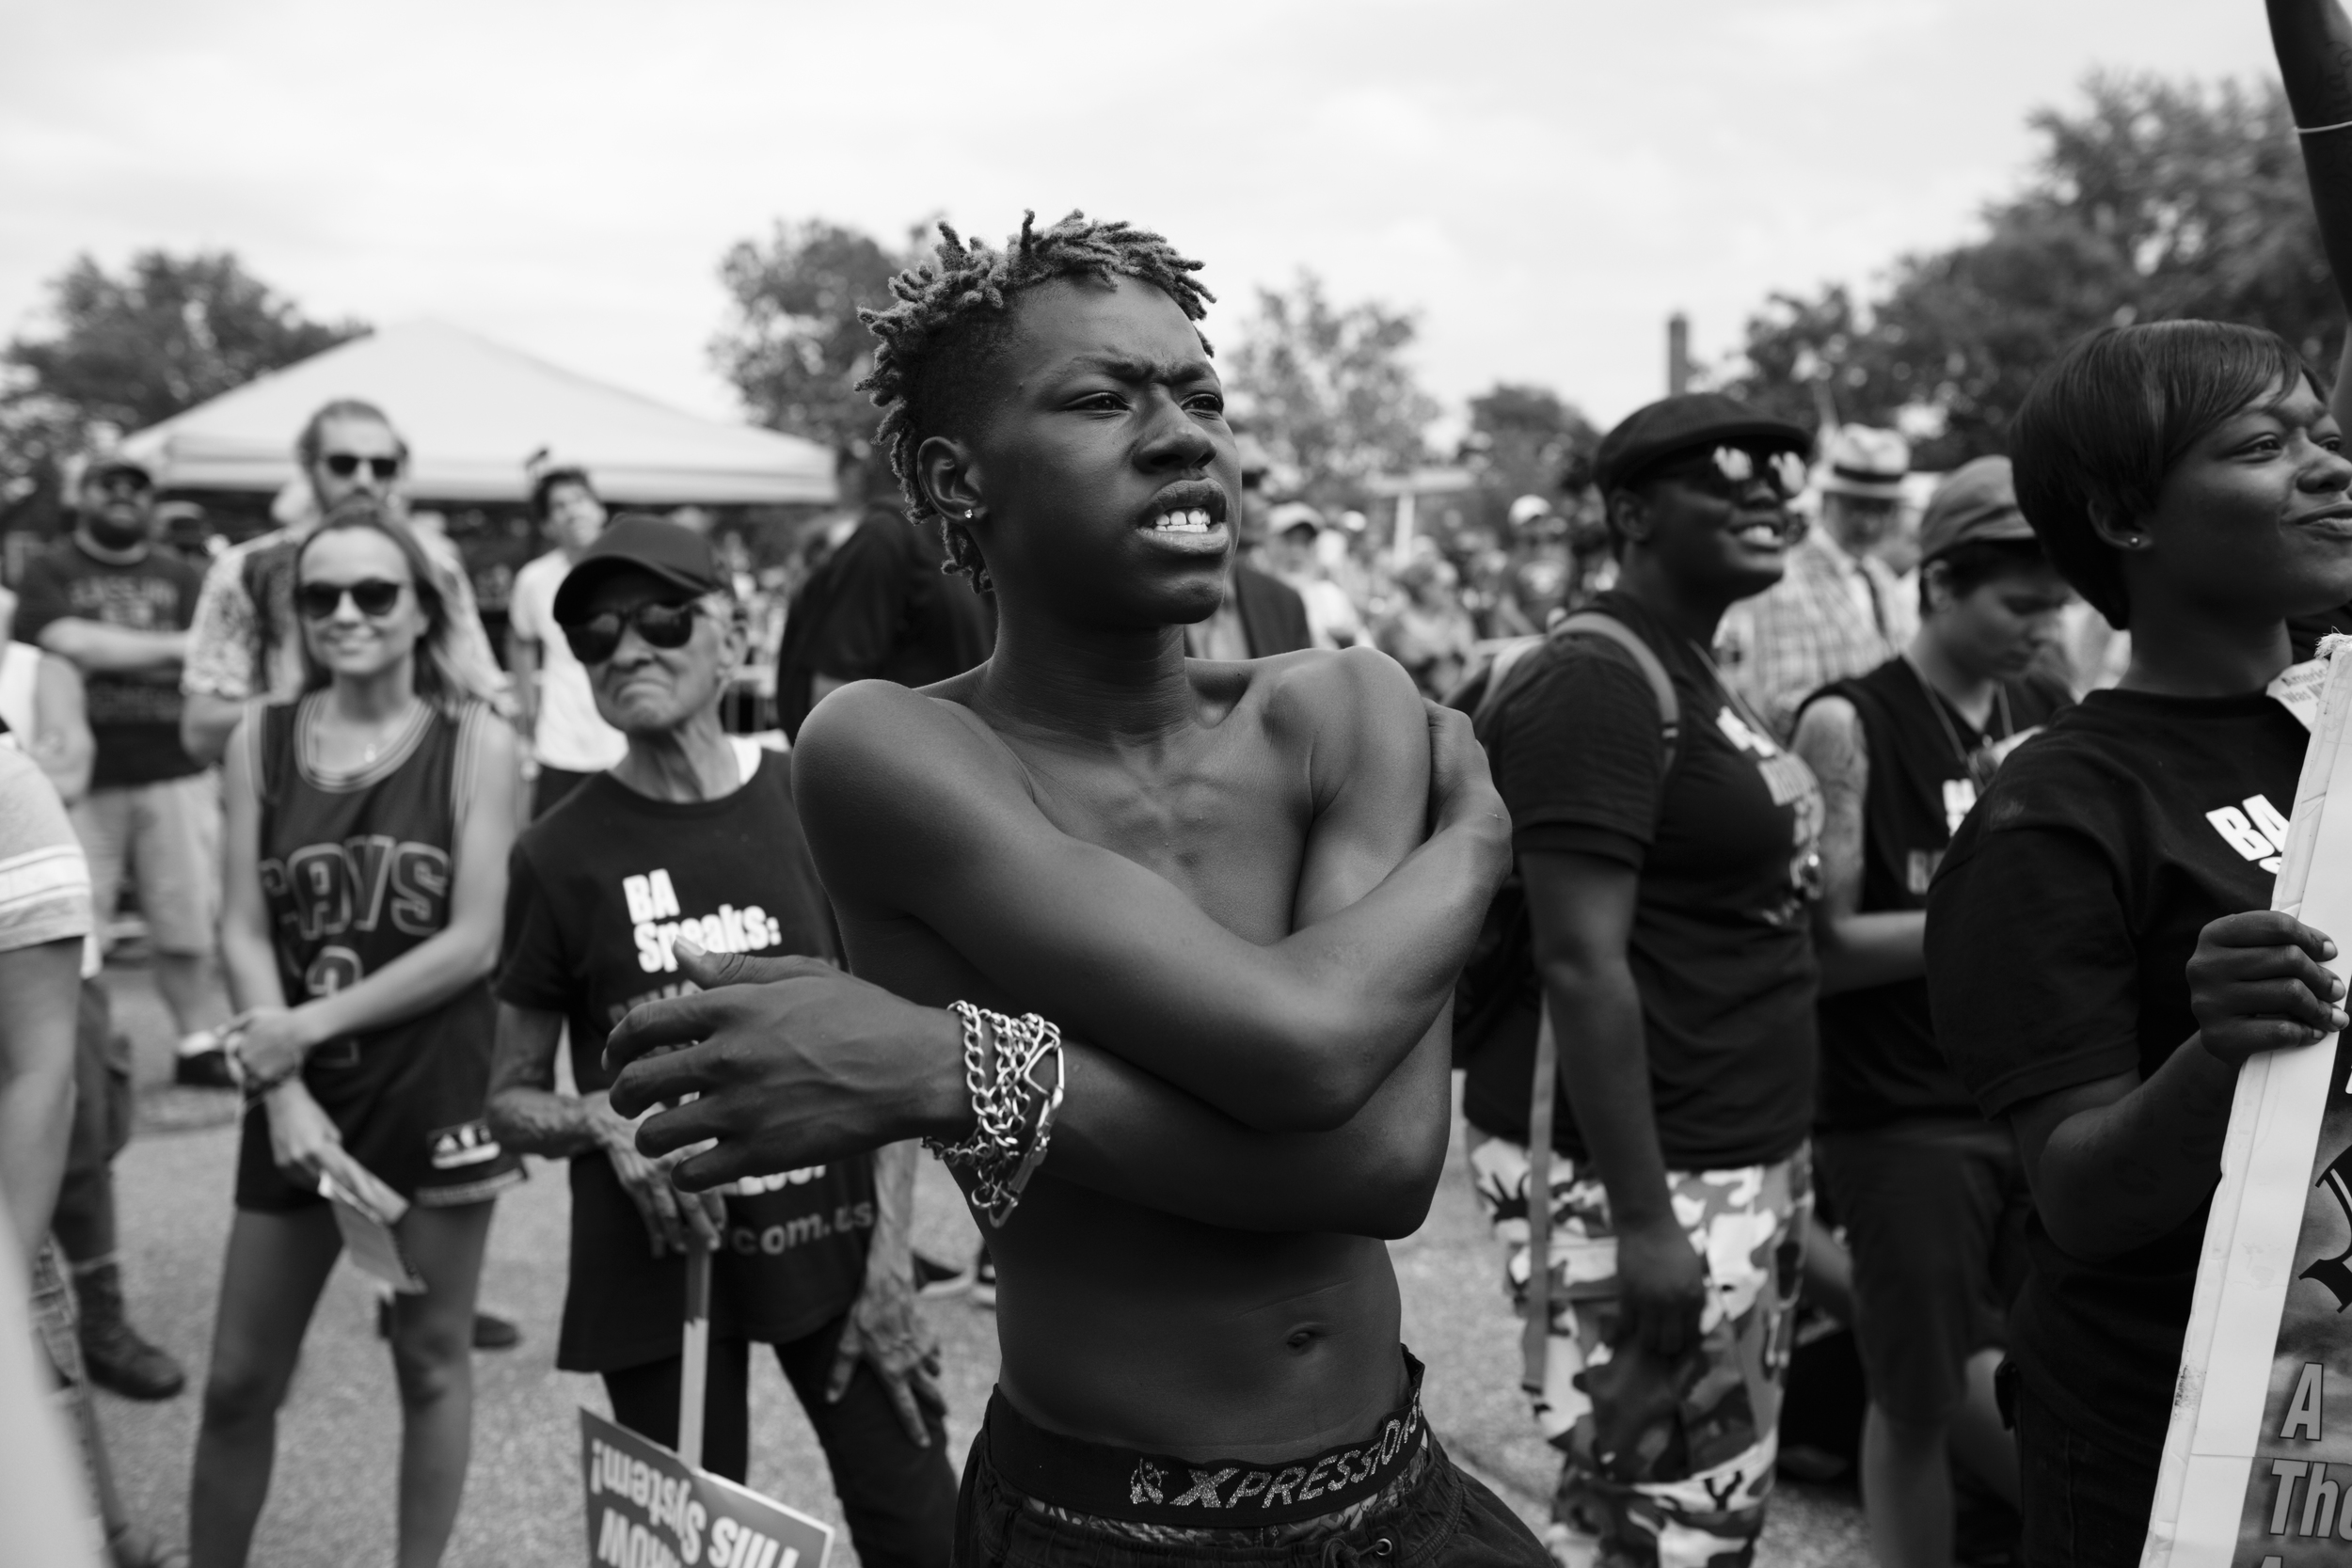 """18 July 2016 - Cleveland, Ohio - REVCOM activist Kael is listening to a speech at the """"End Poverty"""" rally in East Cleveland. The Republican National Convention kicked off on Monday and was surrounded by small and peaceful protests.Photo: Cédric von Niederhäusern"""